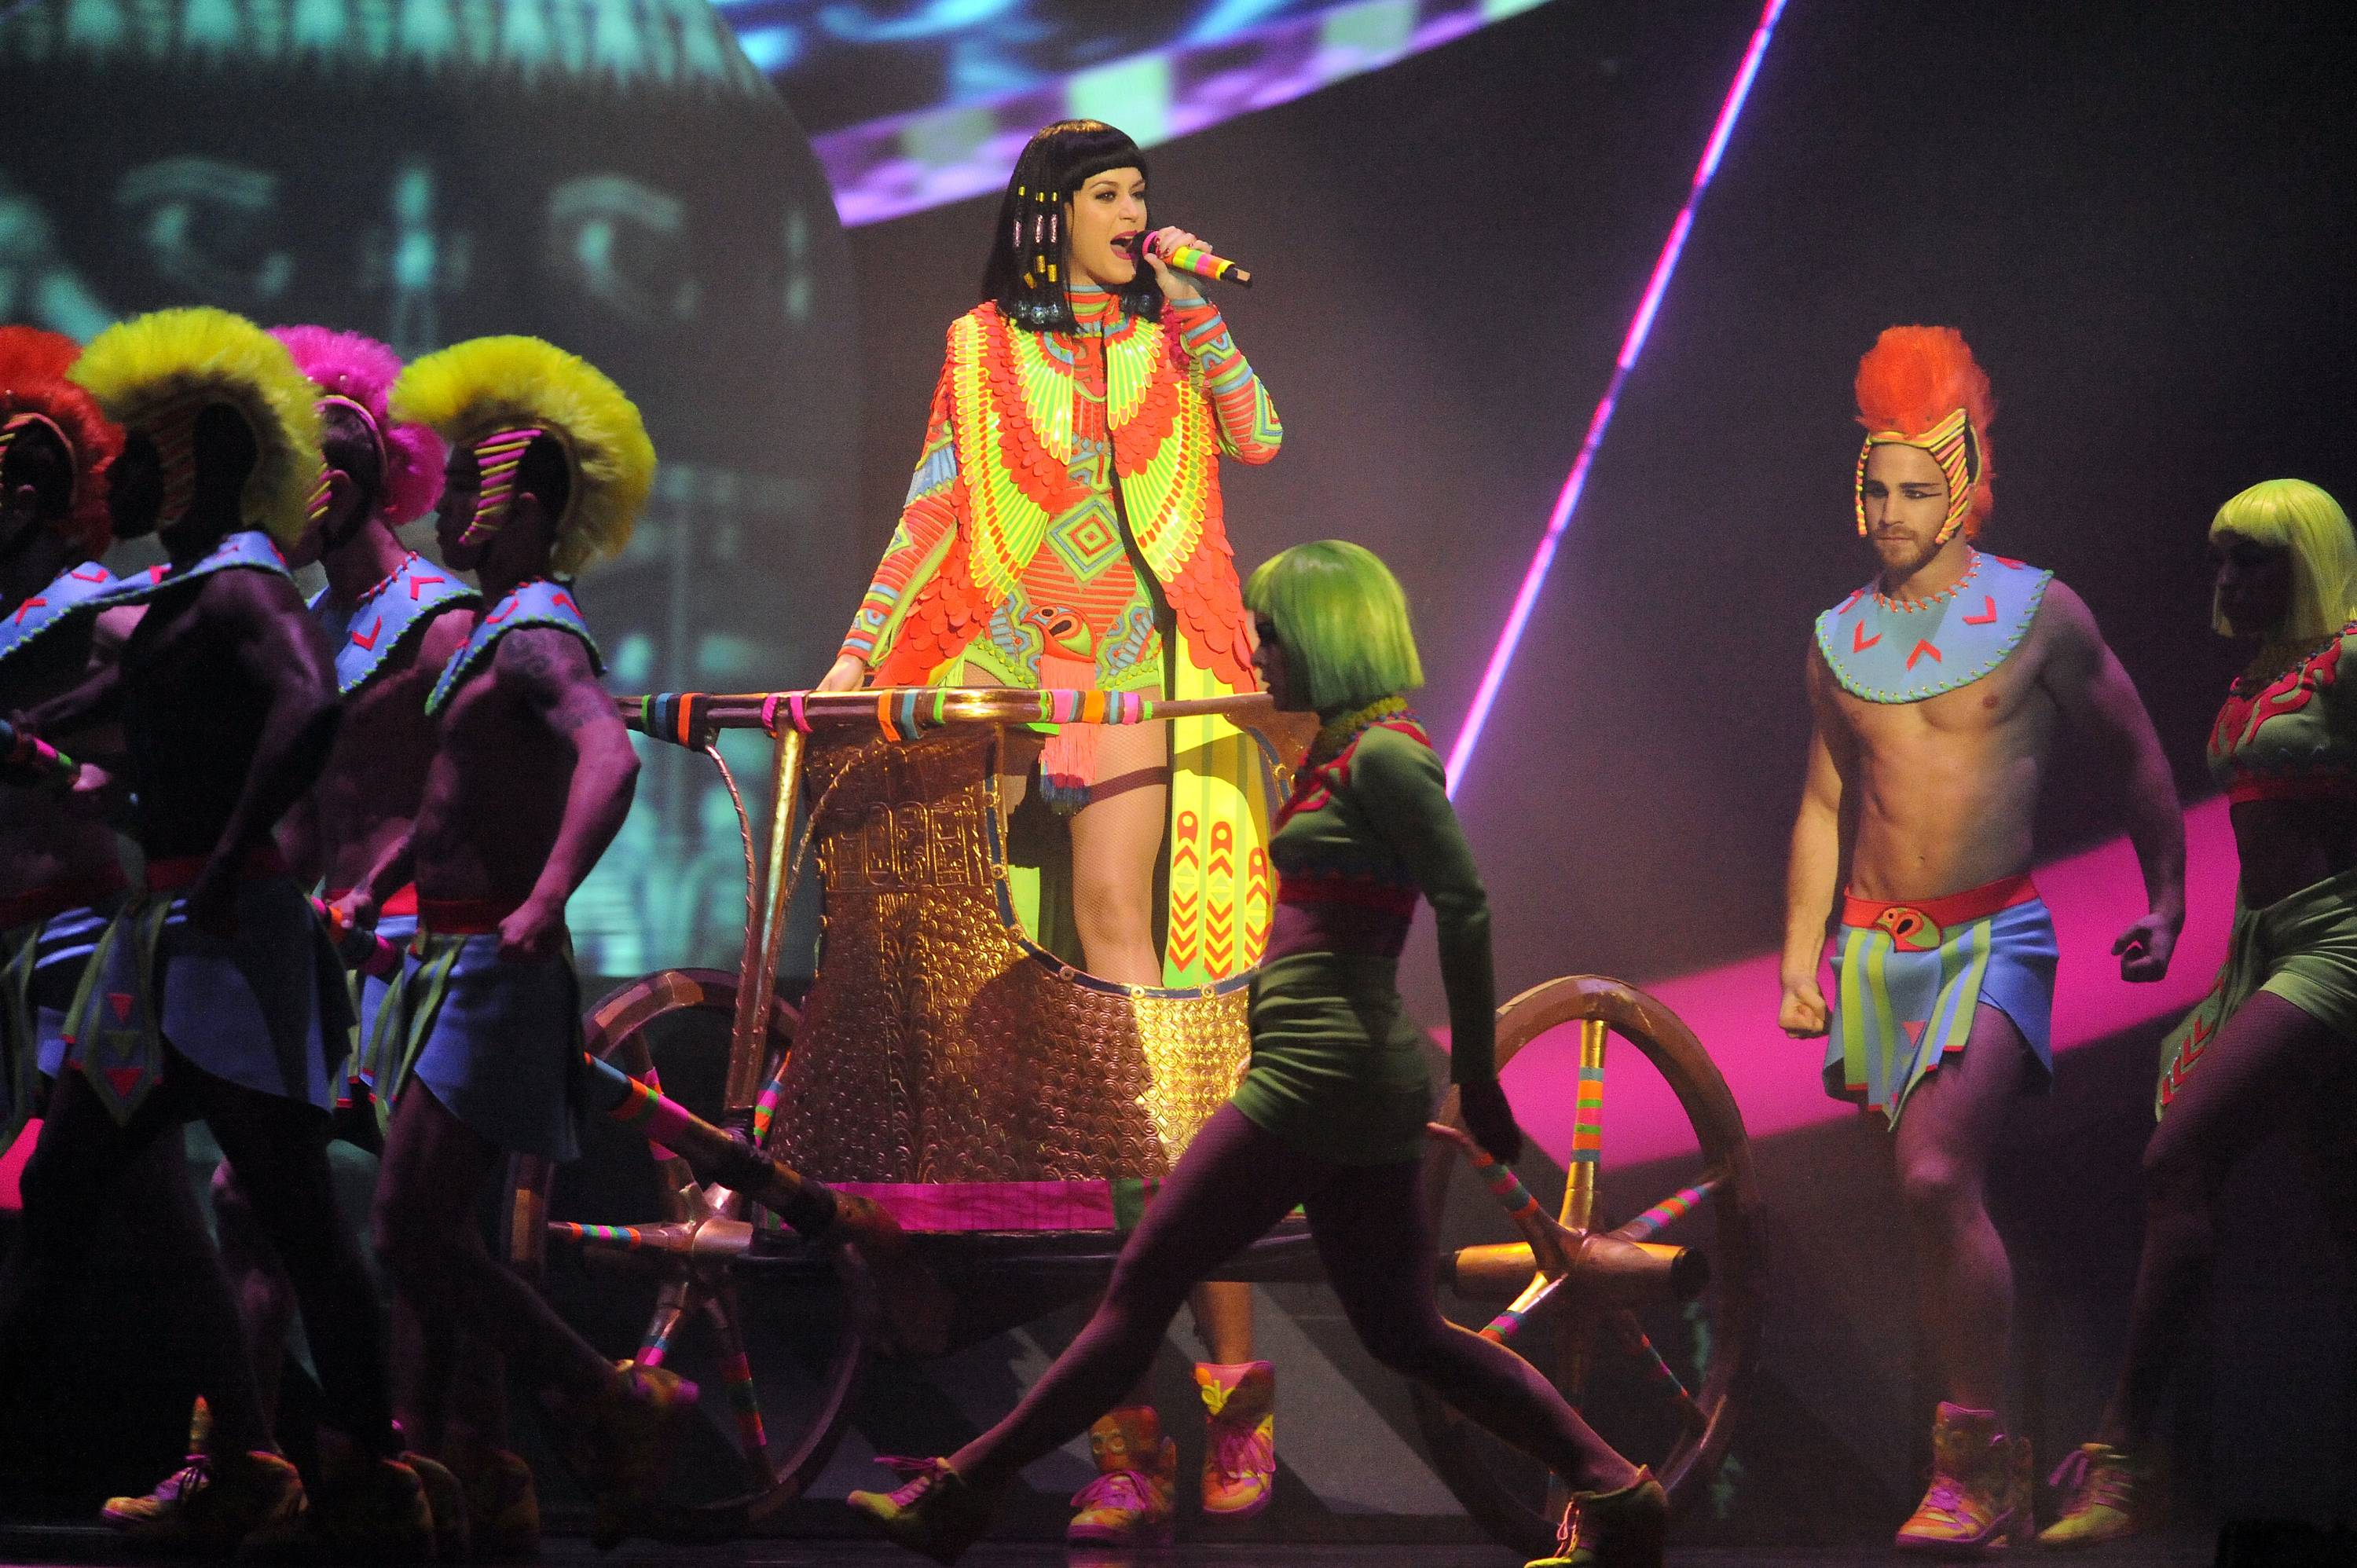 Singer Katy Perry performs on stage at the BRIT Awards 2014 at the O2 Arena in London.